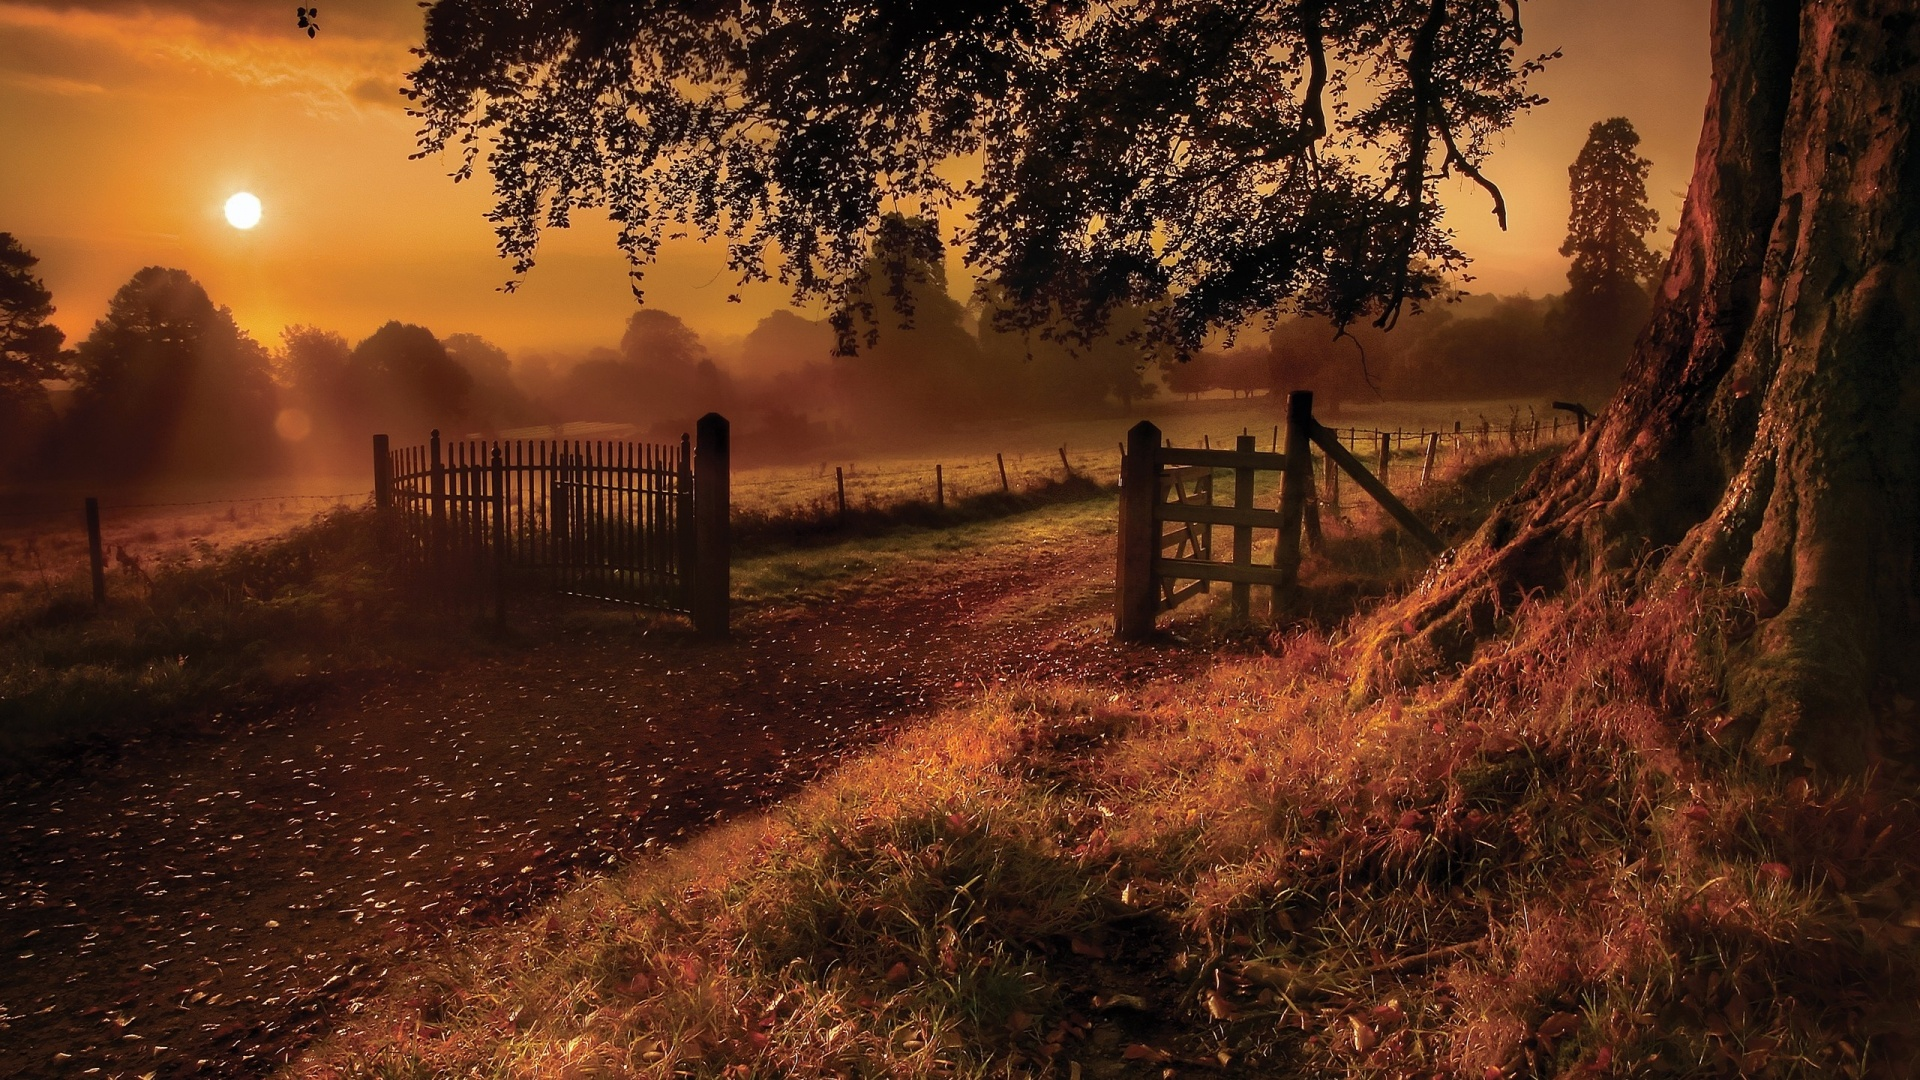 Brandees Place Images Autumn Image HD Wallpaper And Background Photos